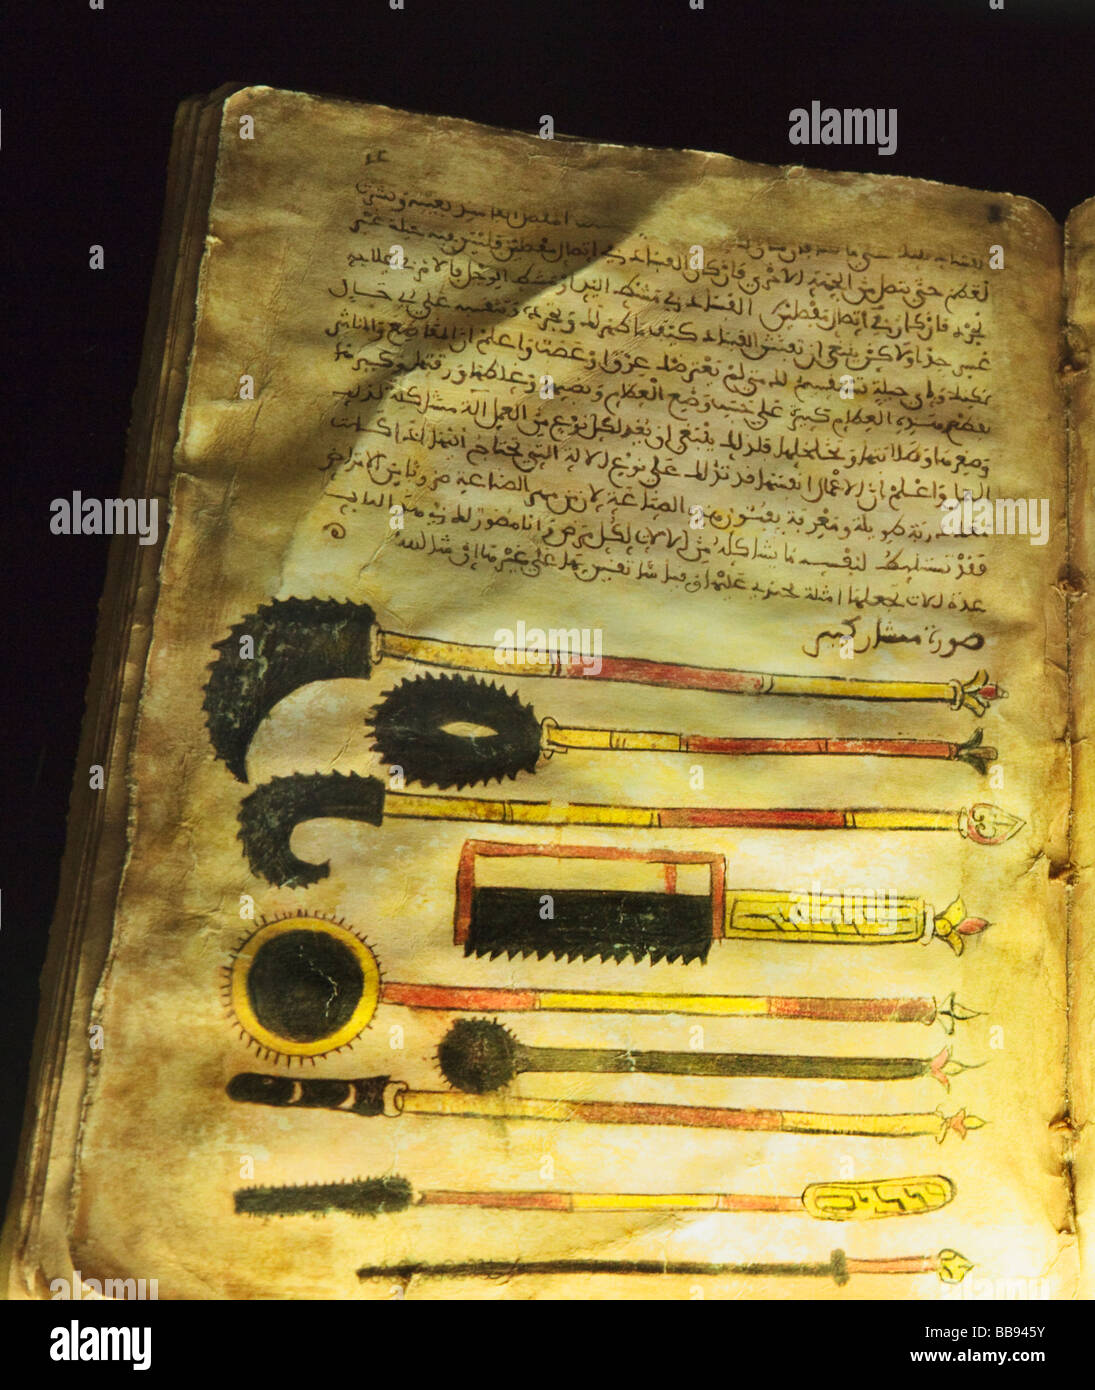 Illustrations of surgical instruments from a 13th century book Treatise on Medicine by al Zahrawi - Stock Image